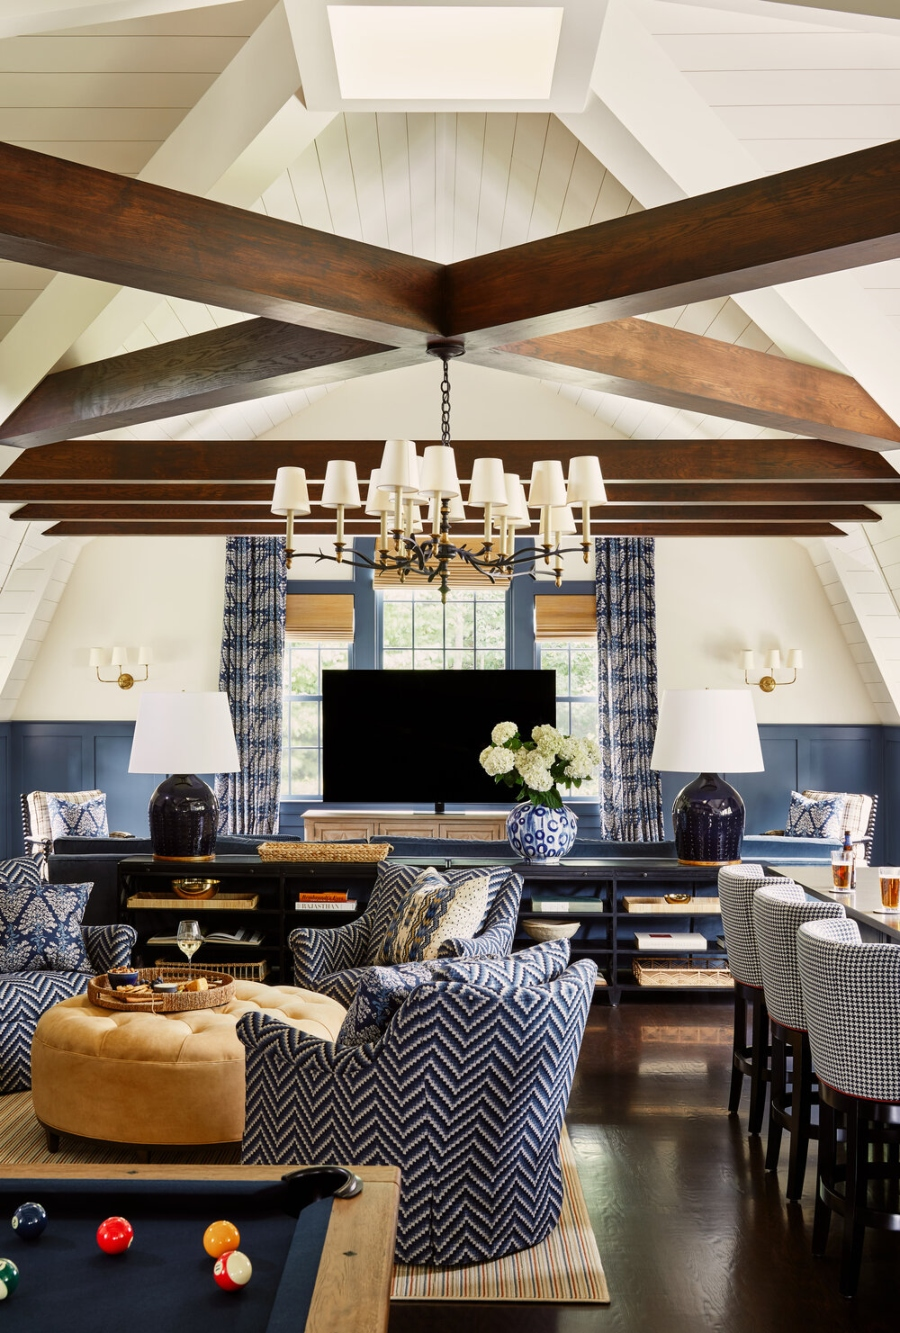 Best Interior Designers in Boston: Our Top 20 Selection